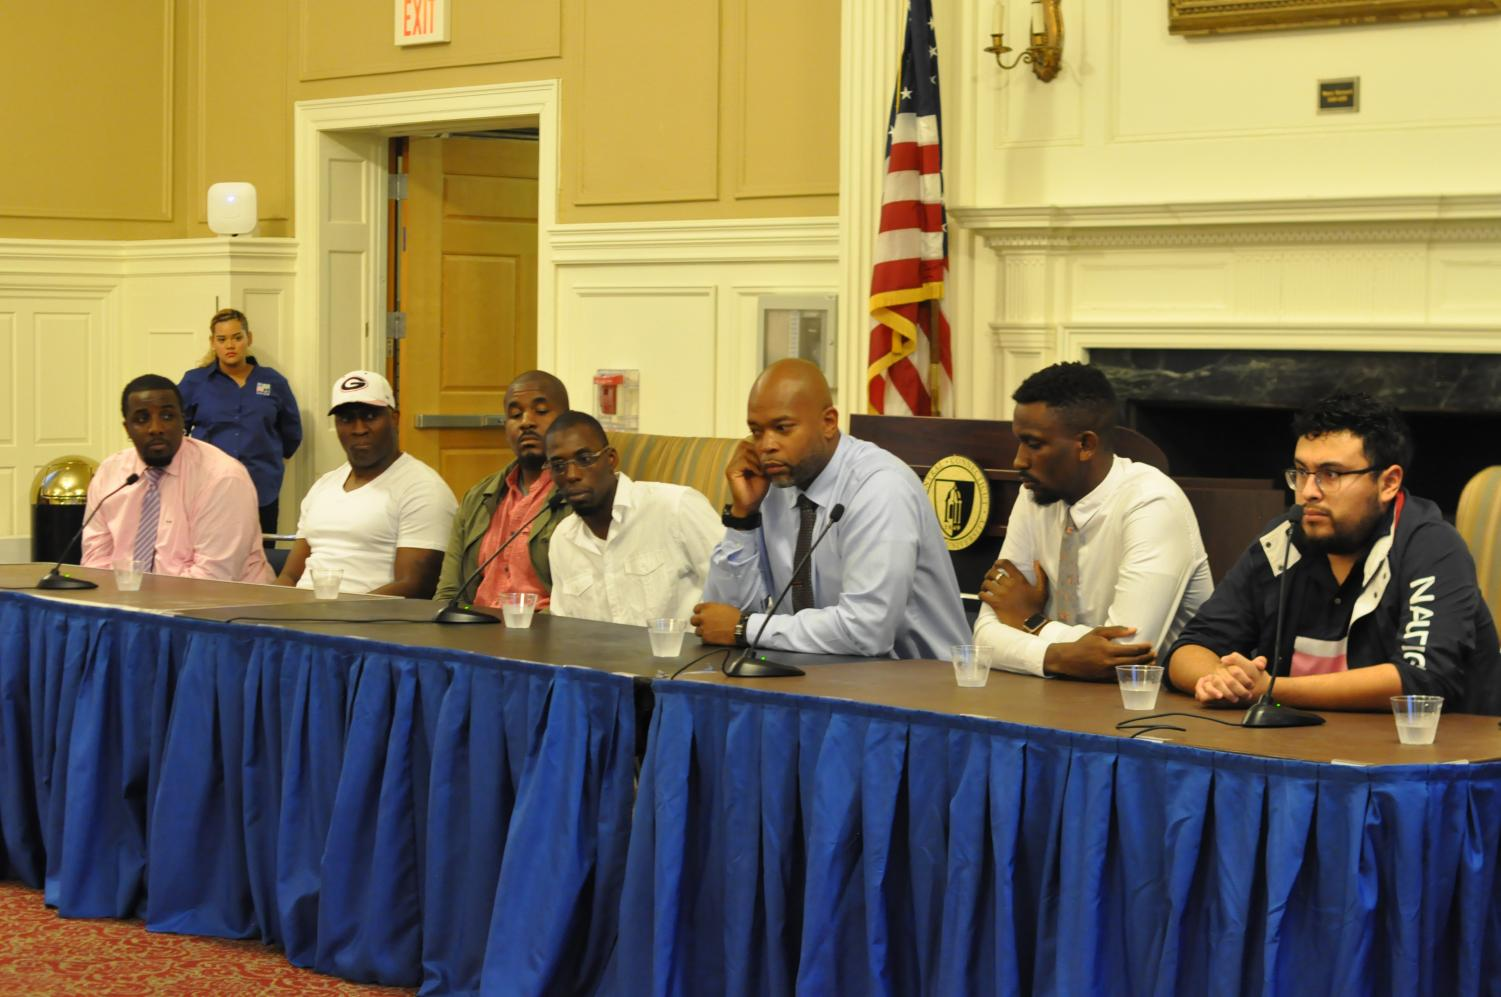 The panel of men emphasized that change begins with helping younger generations.